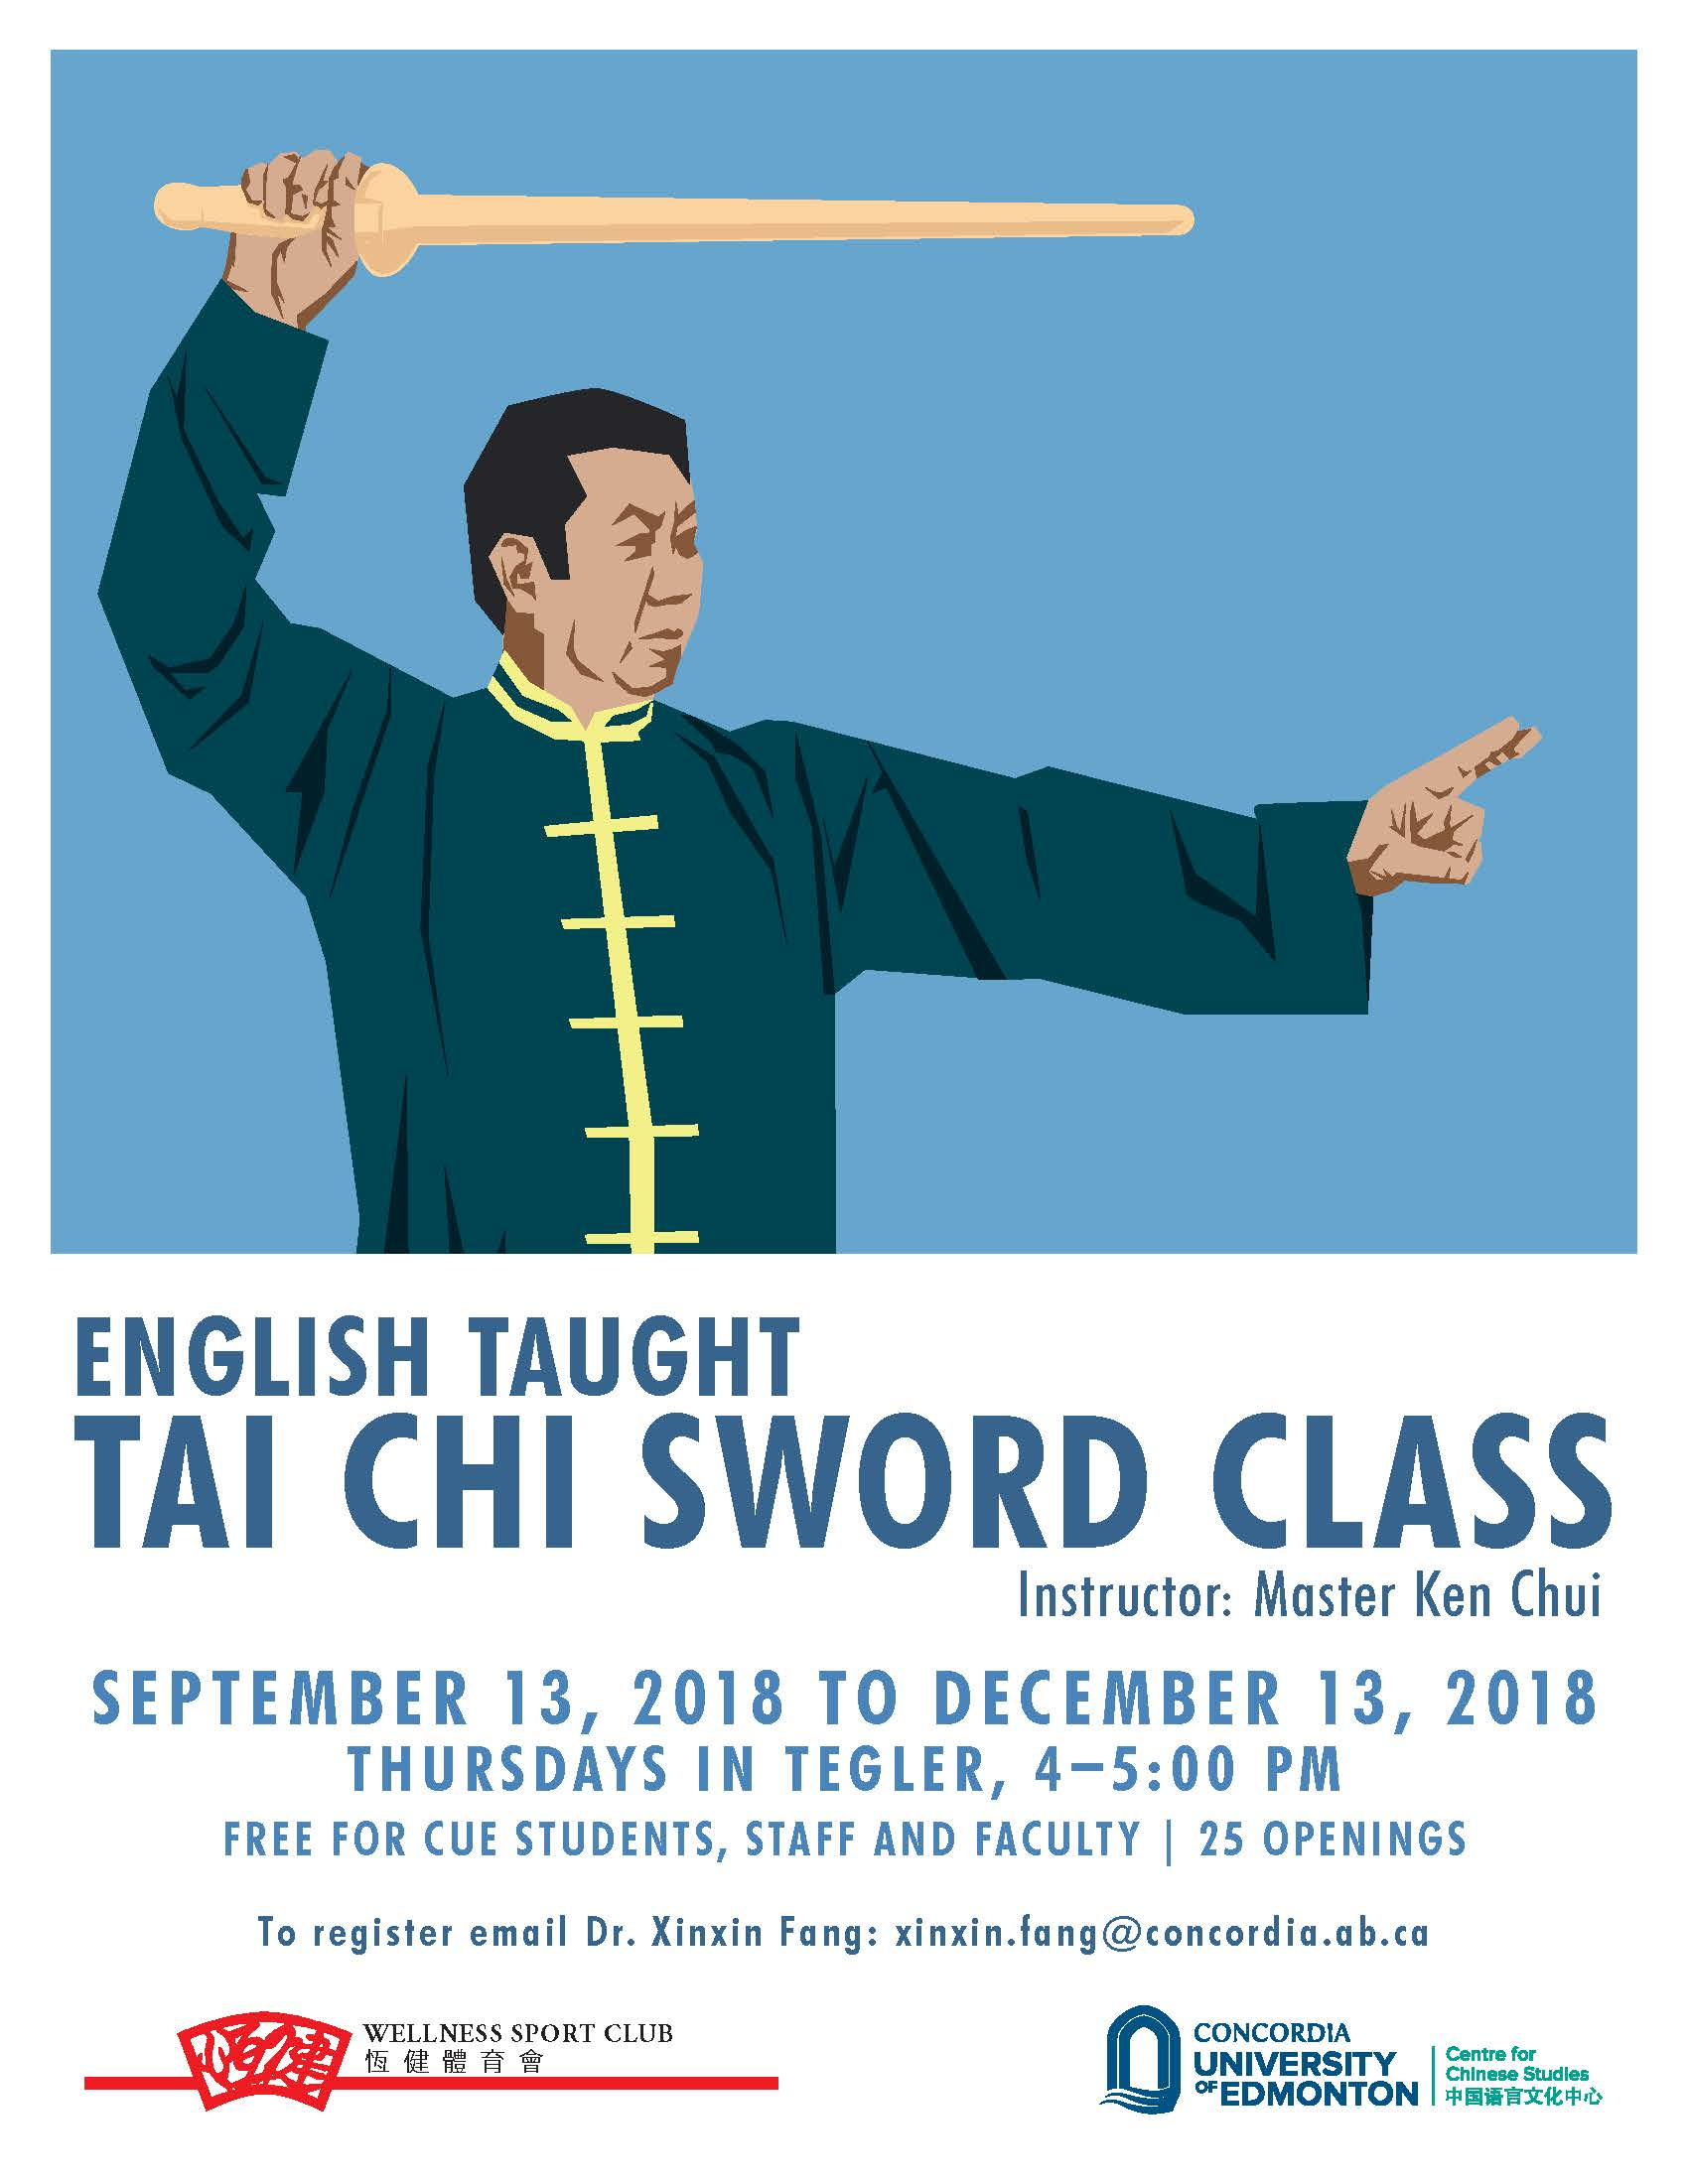 Free Tai Chi Sword Class & Chinese Language Classes This Fall